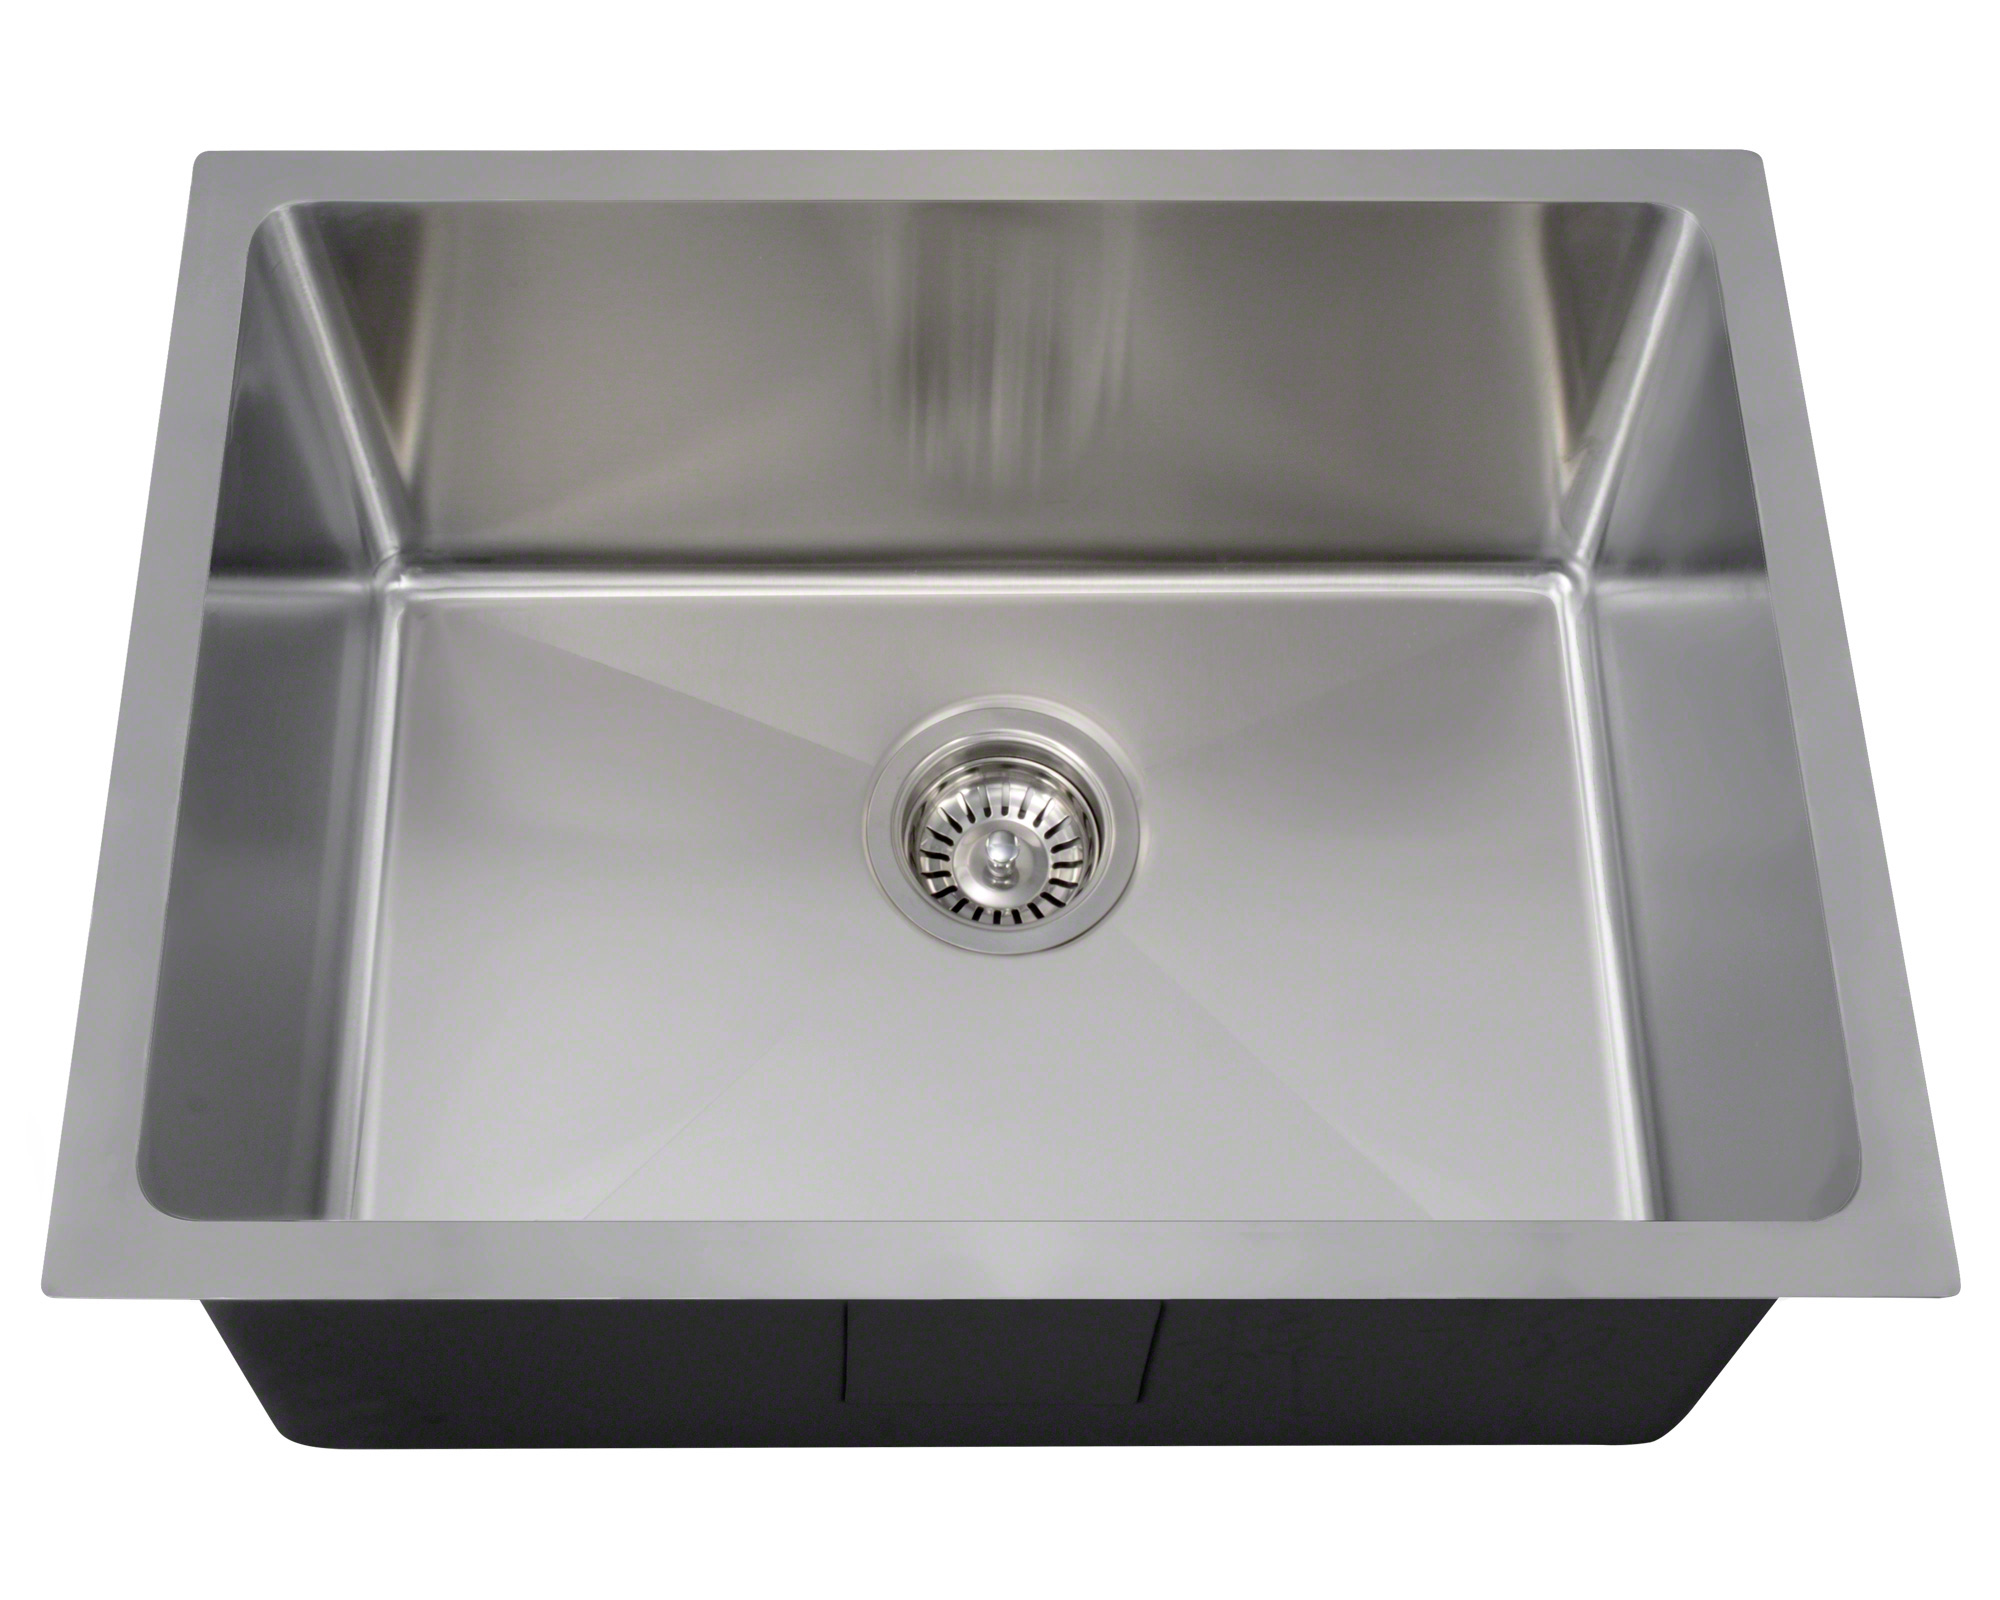 "P3281 Stainless Steel Single Bowl 3/4"" Radius Kitchen Sink"